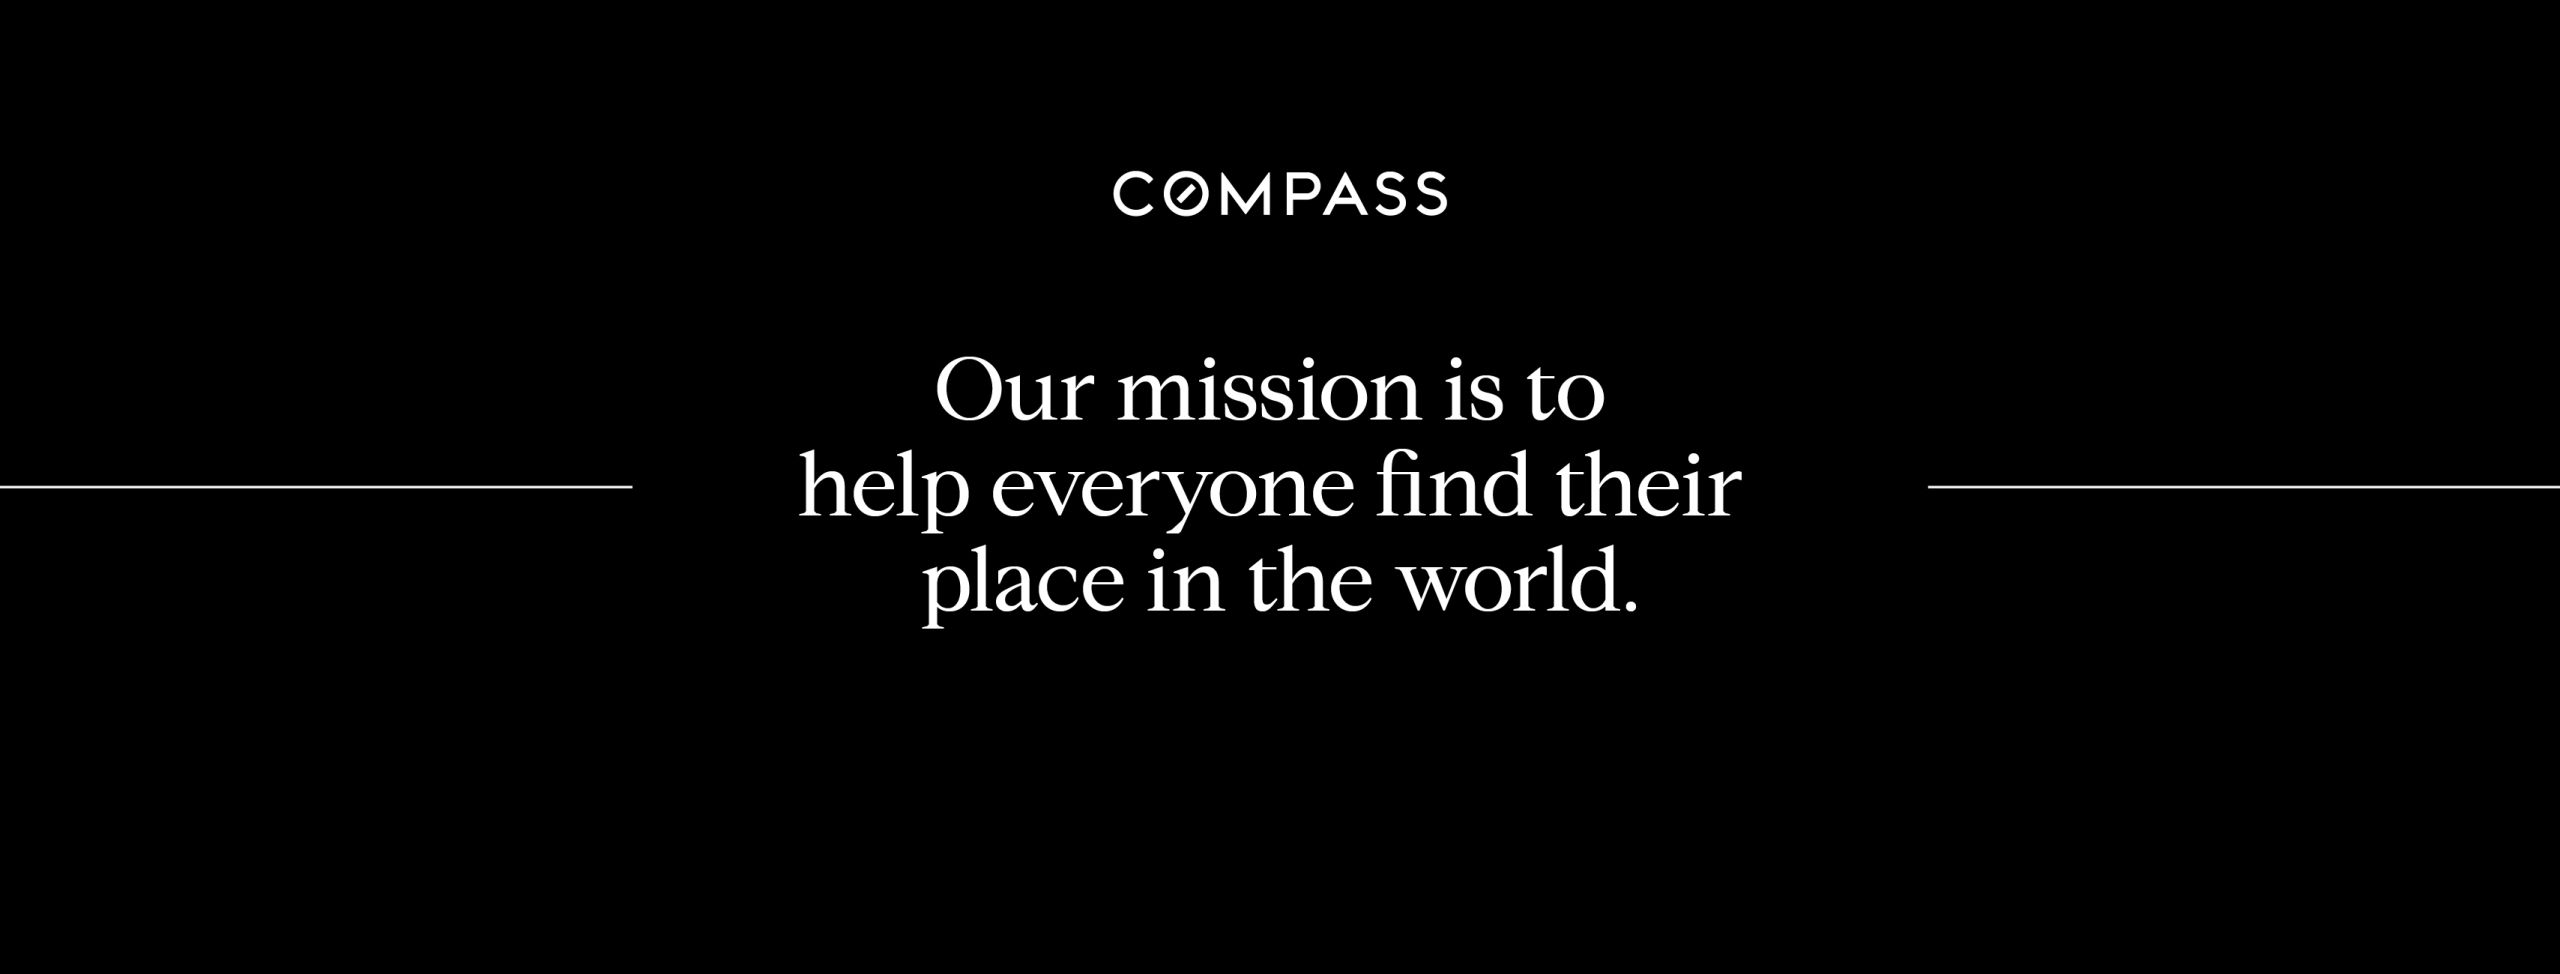 Our mission is to help everyone find their place in the world